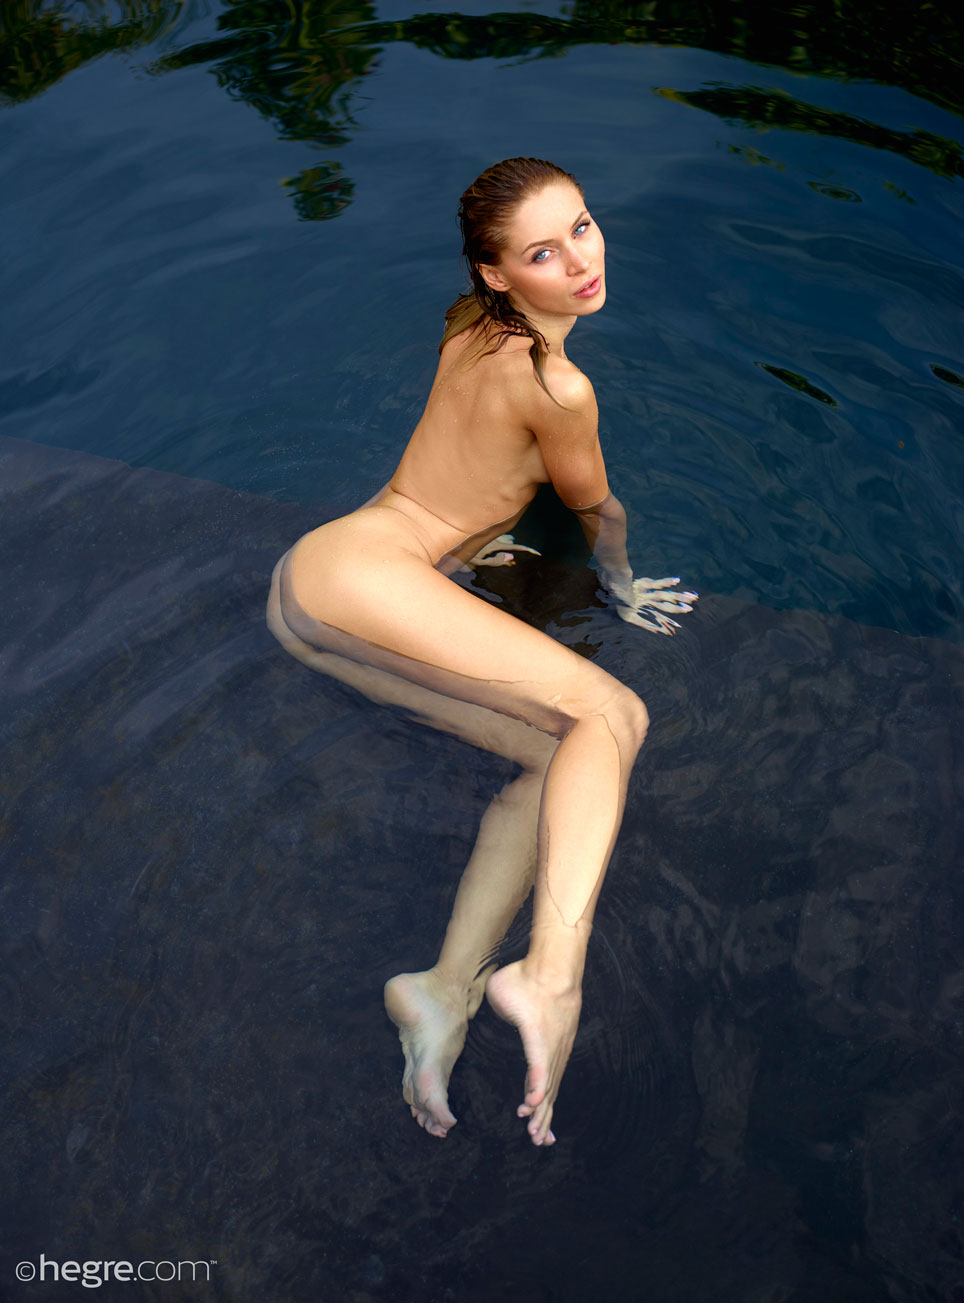 Erotic pictures of skinny dipping